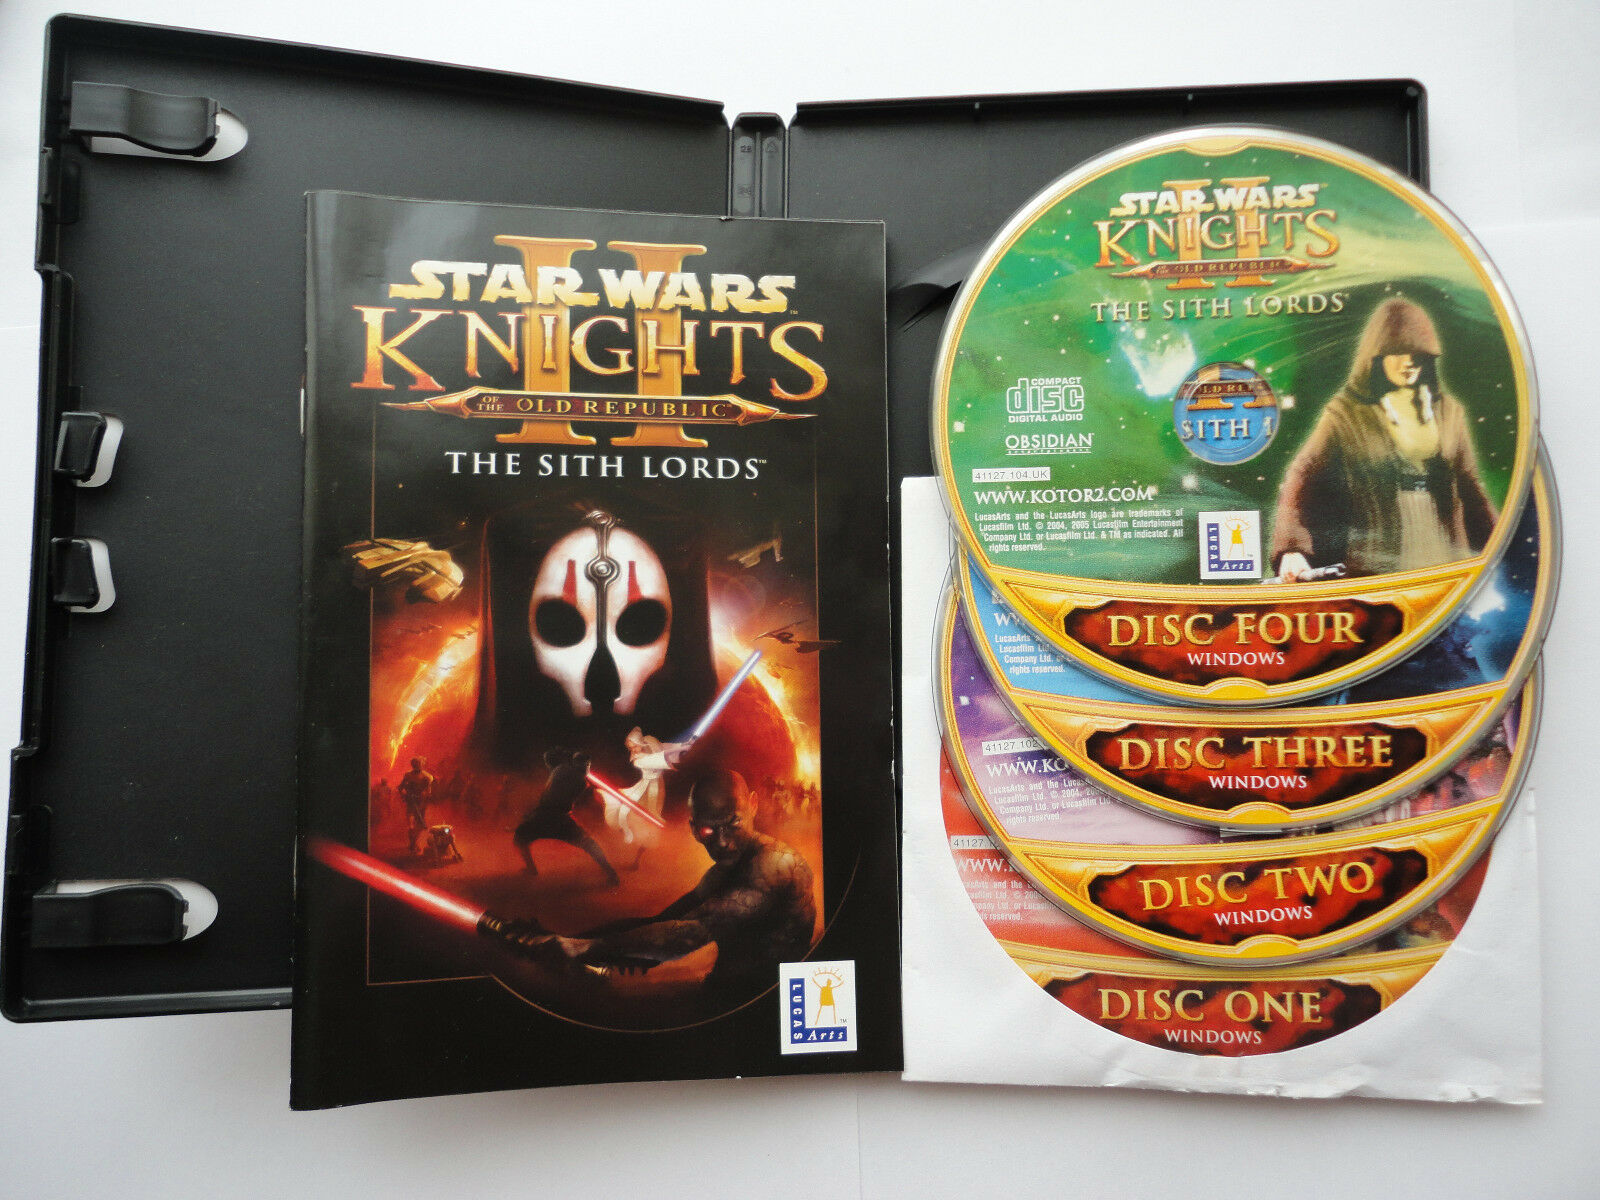 Star Wars Knights of the Old Republic 2 - Bonne affaire StarWars